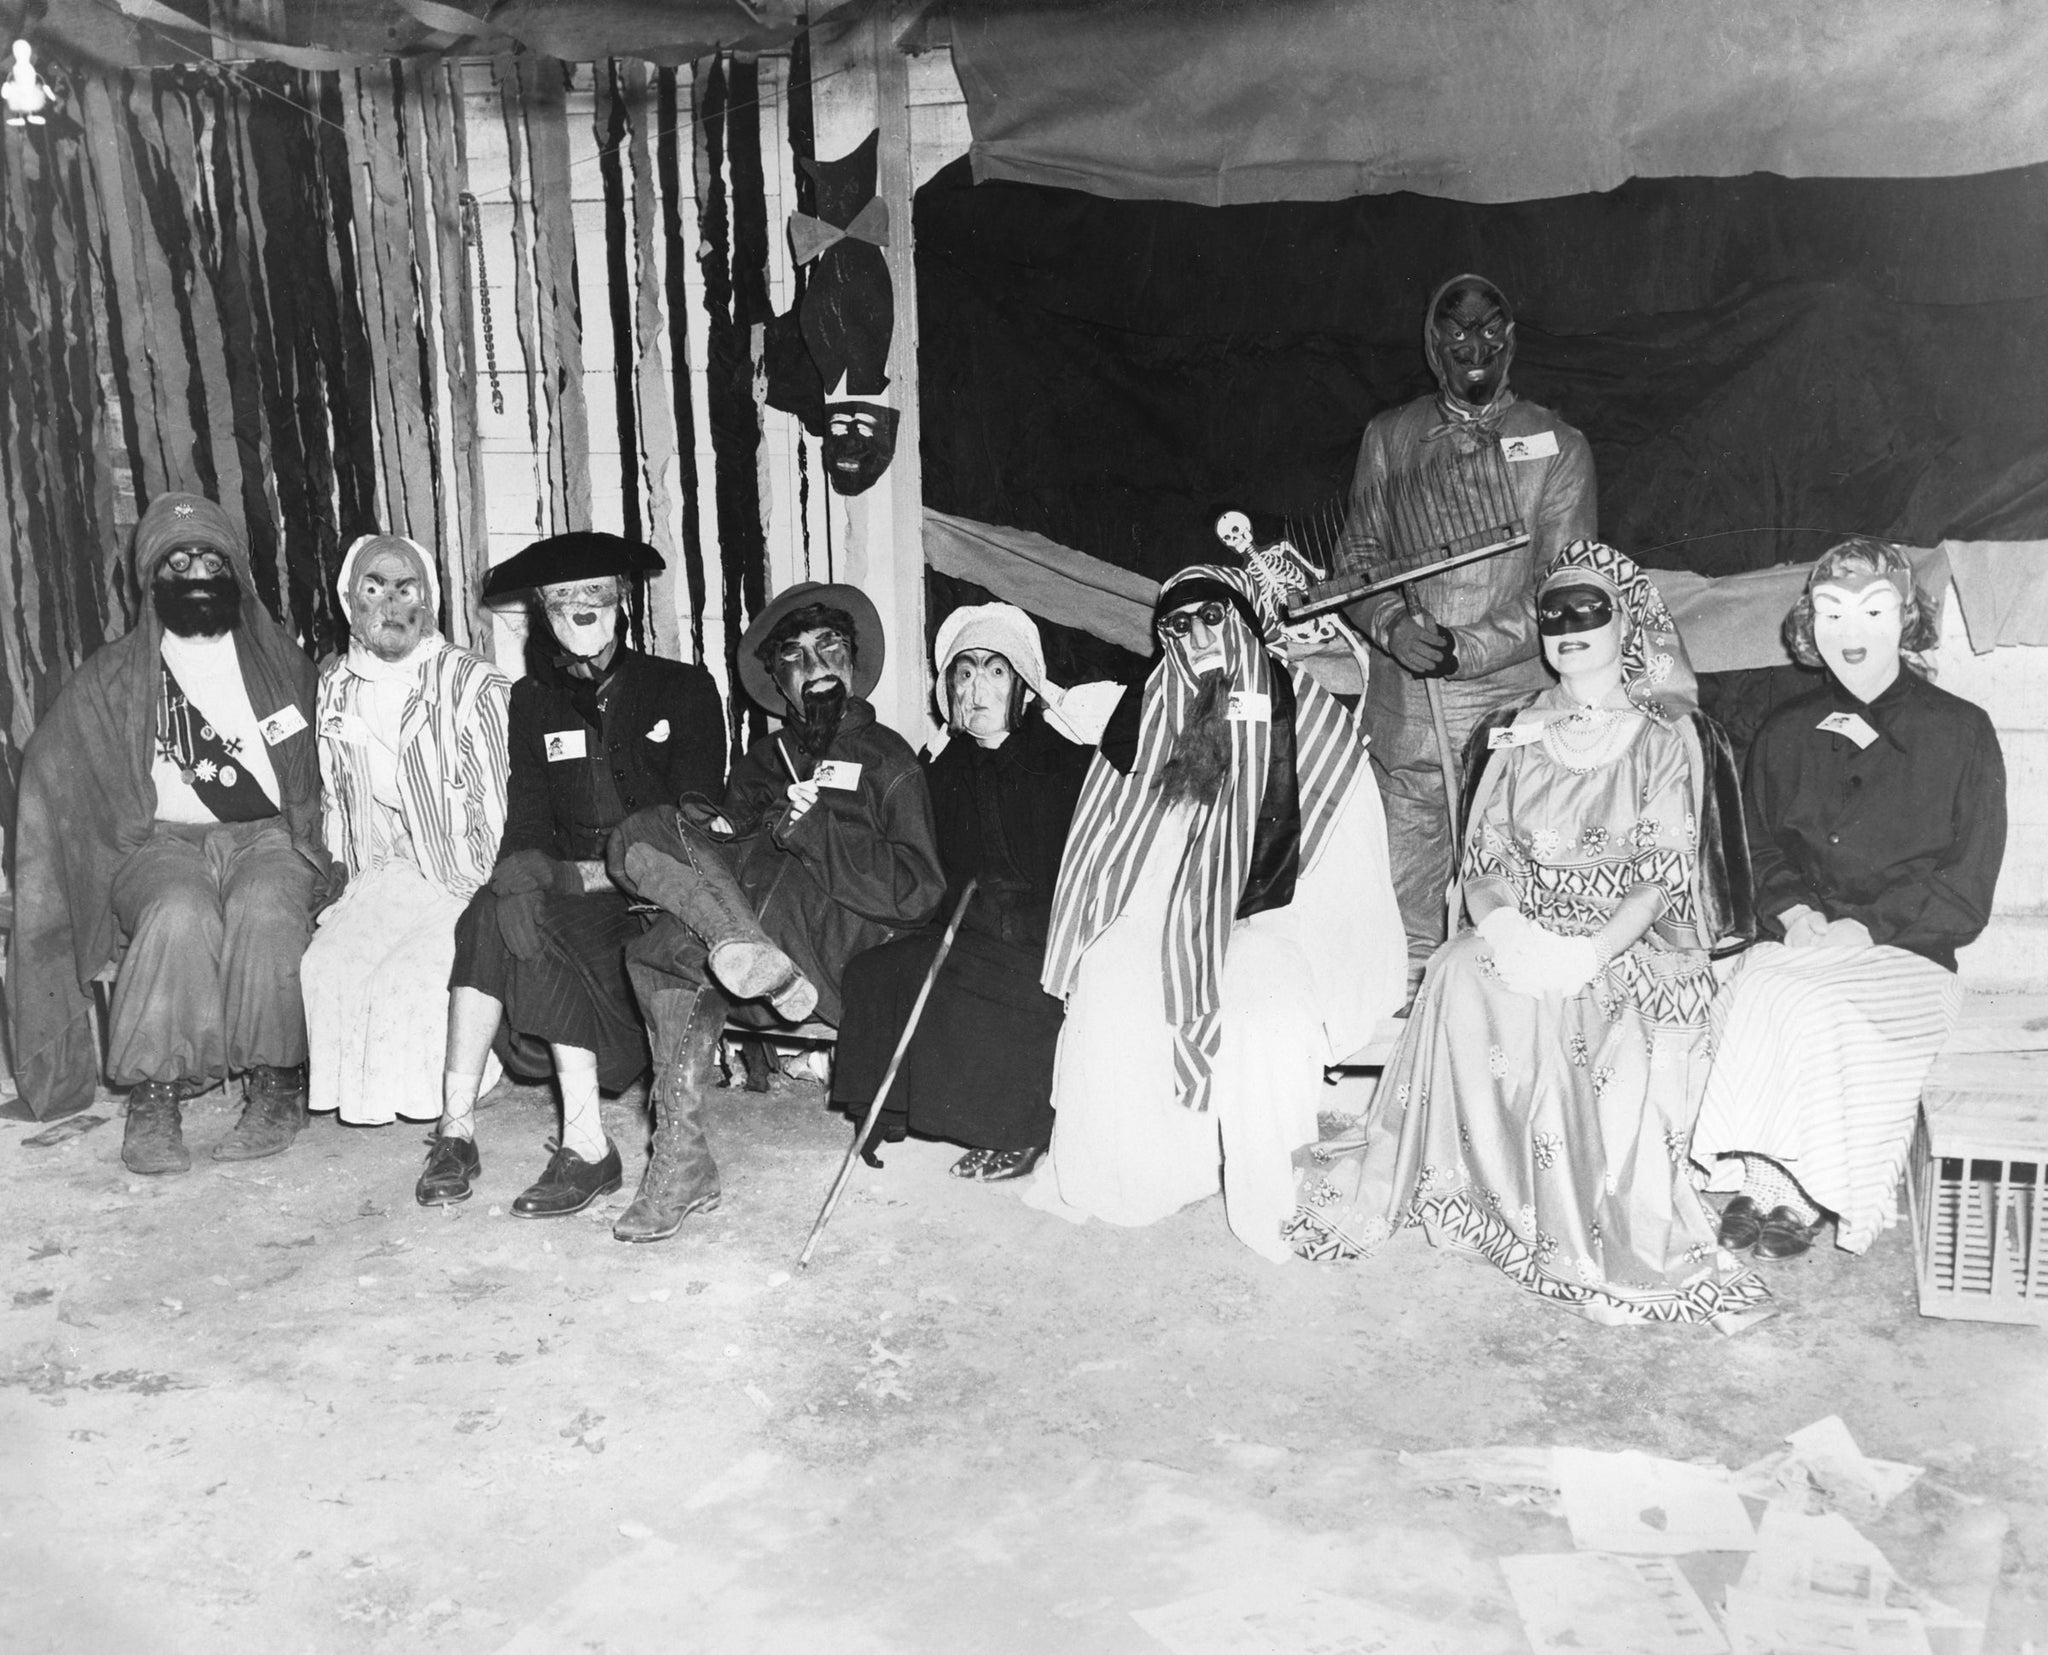 A Halloween party at the home of Clay and Wilma Auman in Asheboro, 1957. -- Courtesy of Elizabeth Perry Nault